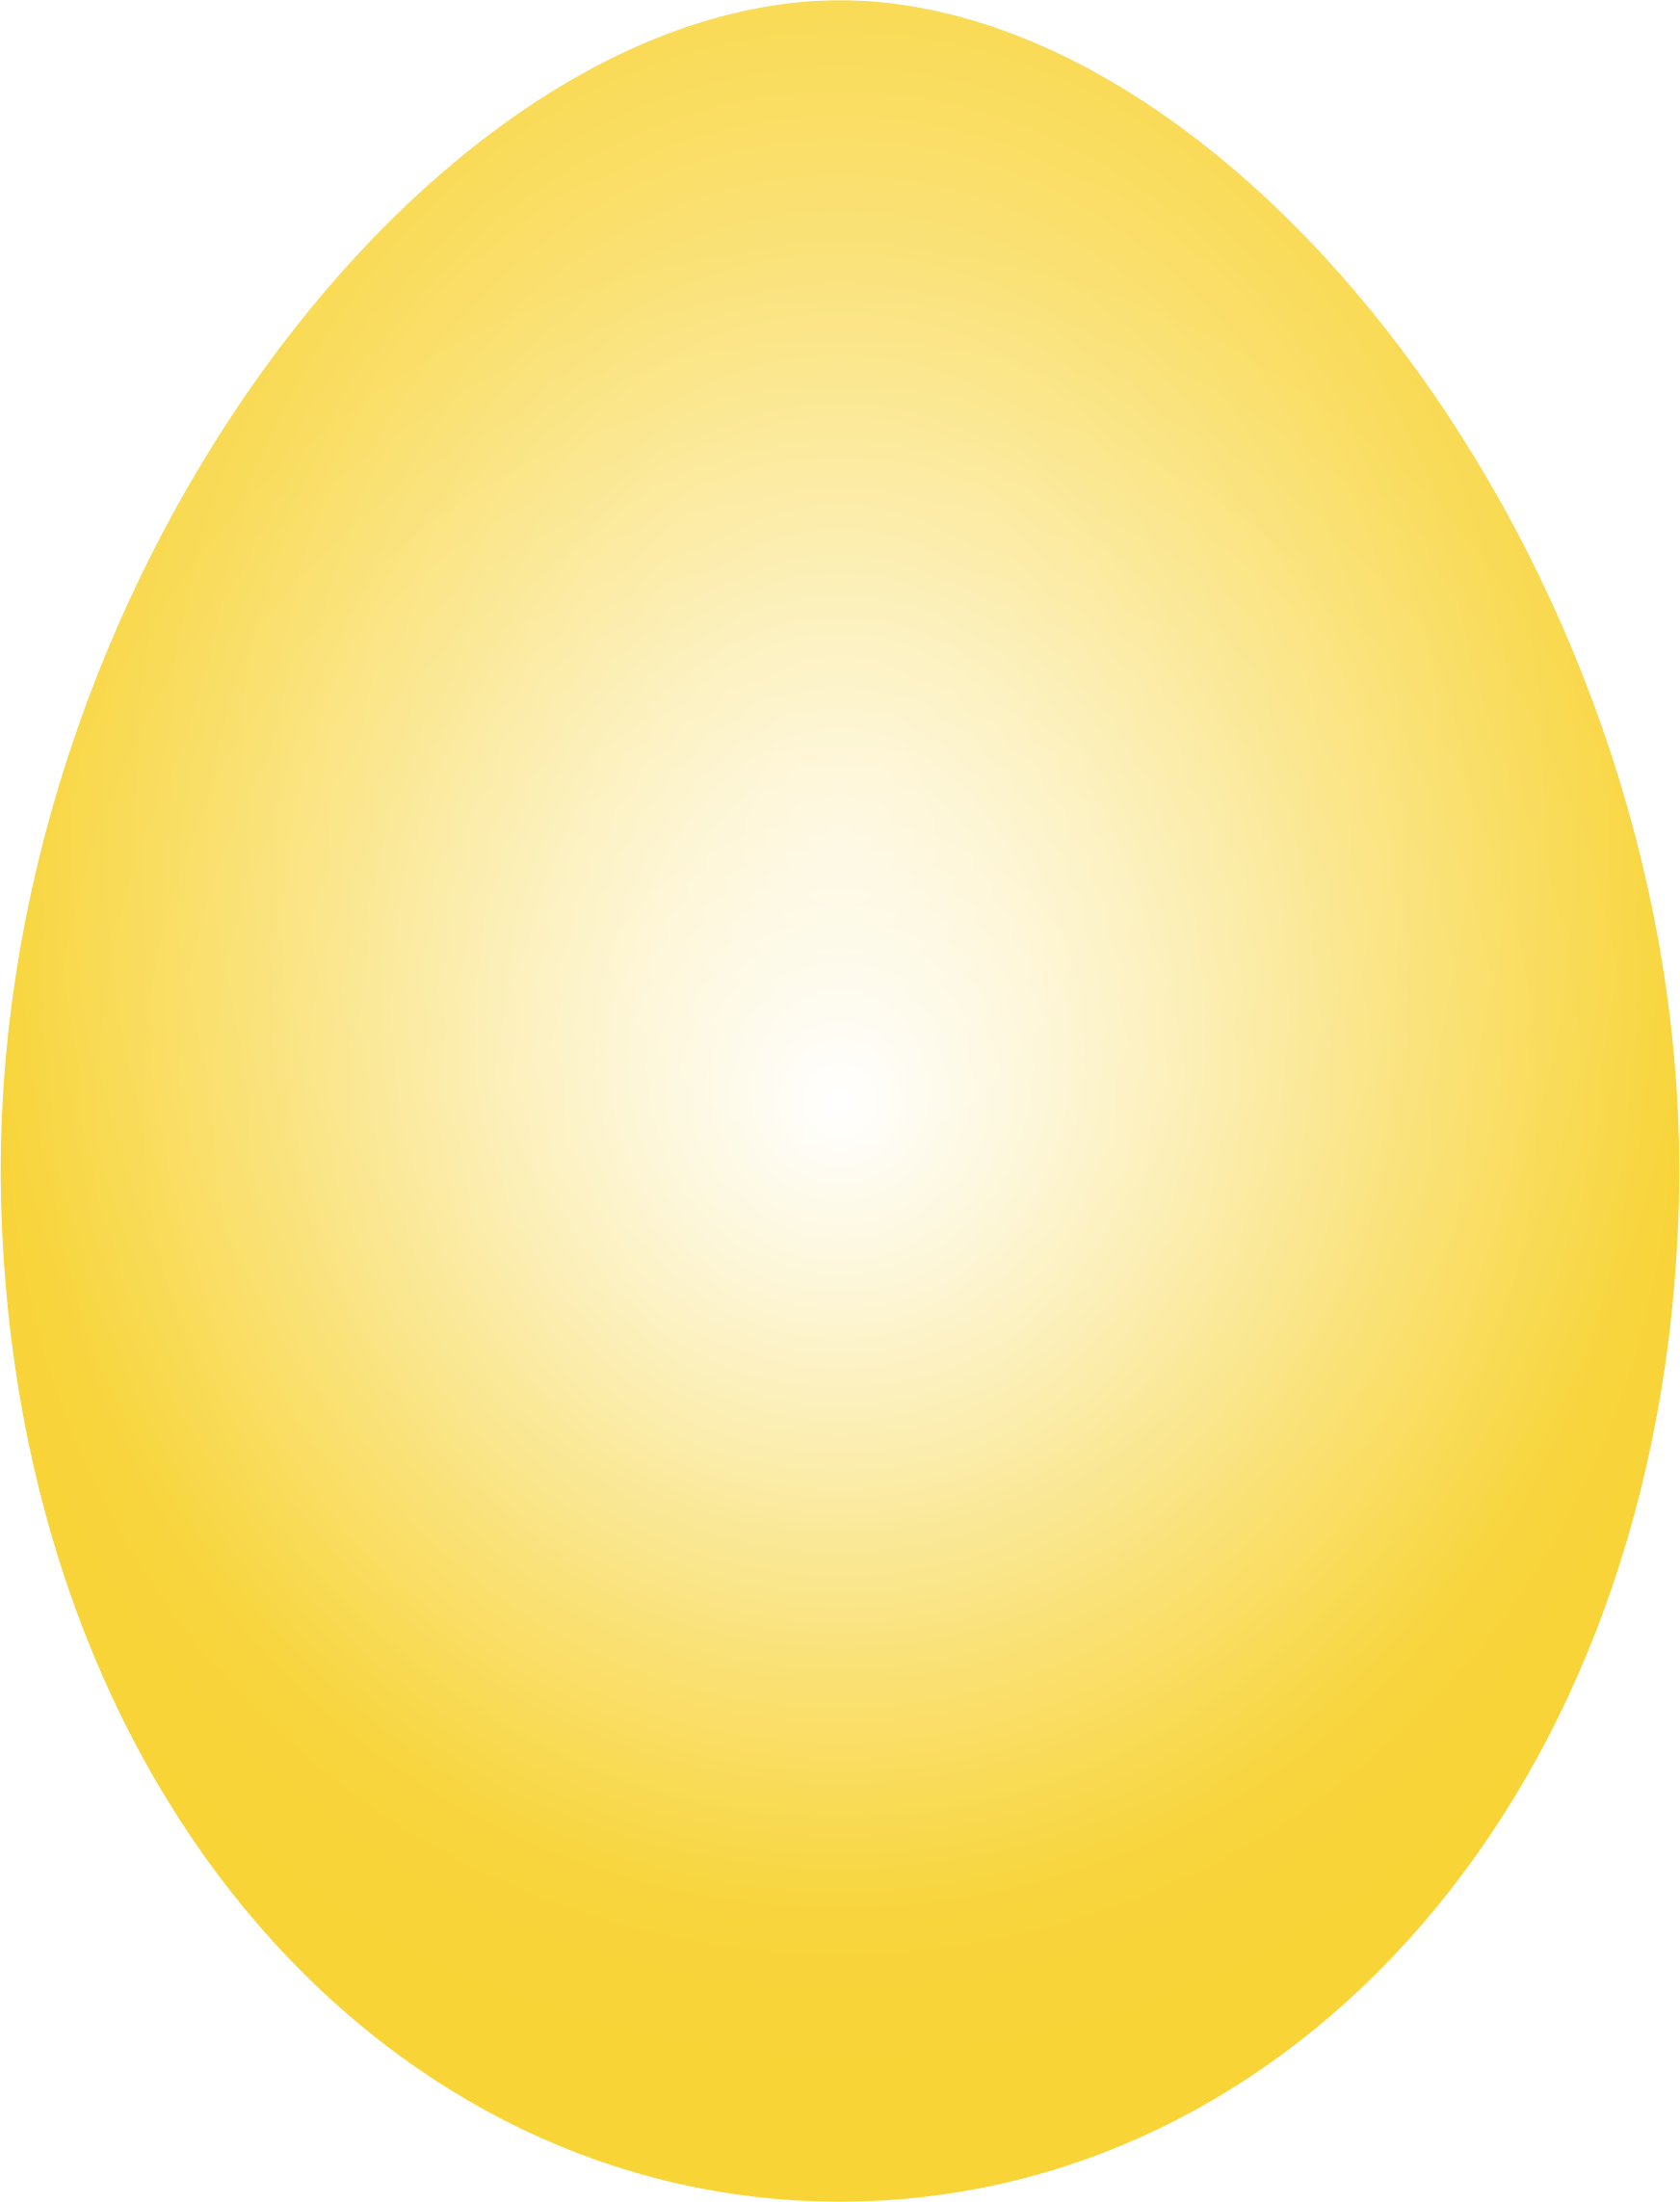 Easter egg yolk clipart free Yellow easter egg clipart png - ClipartFest free